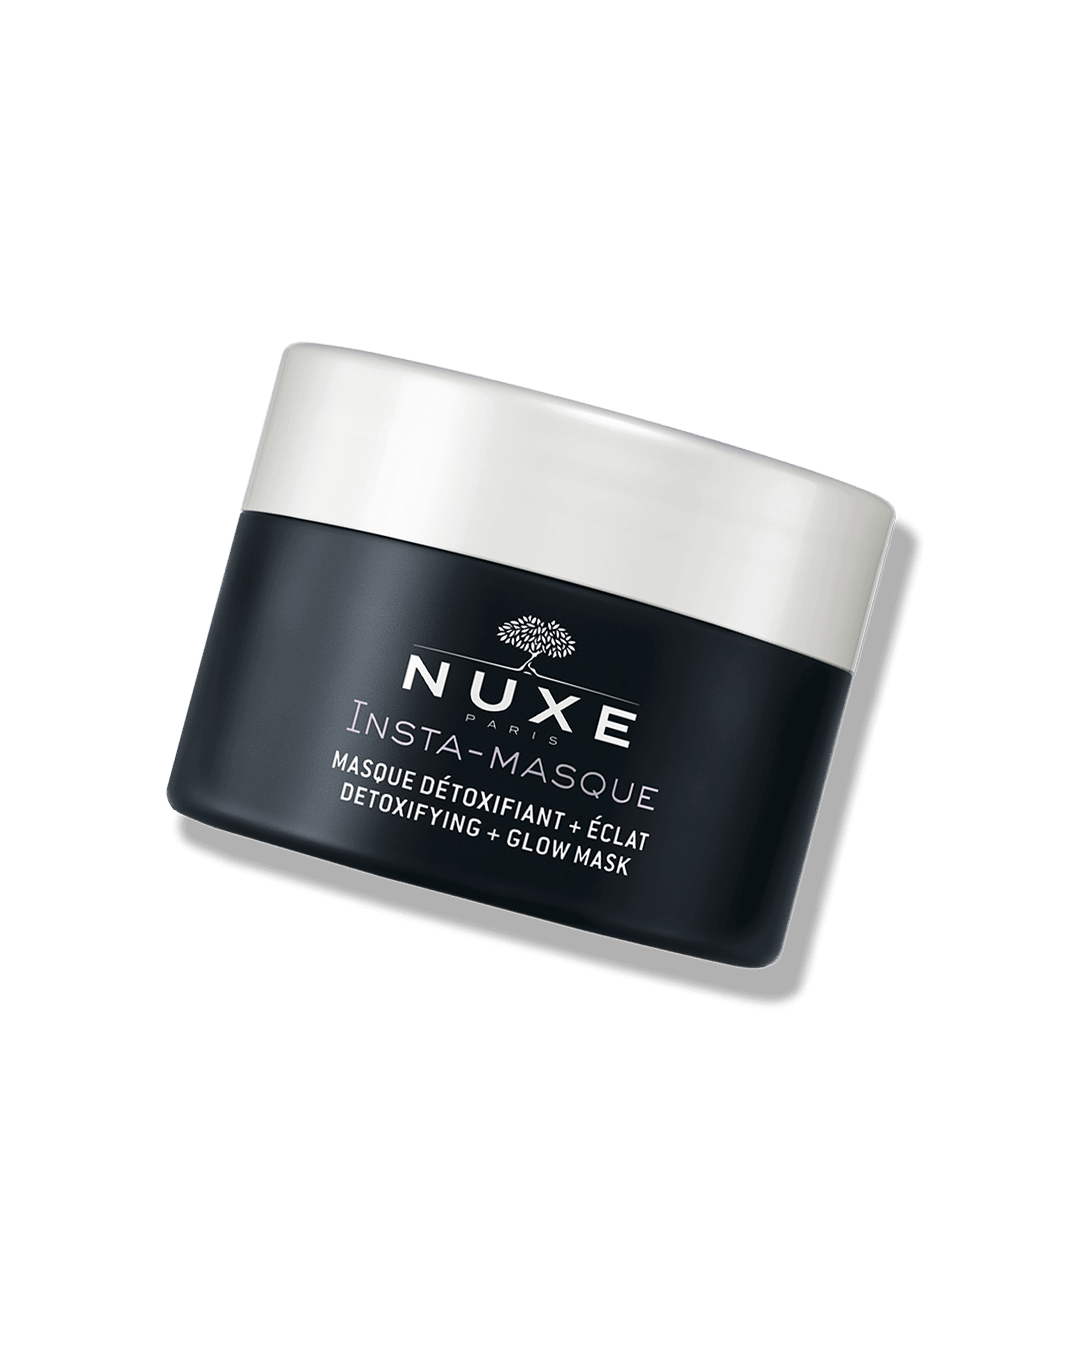 Insta-Masque Detoxifying + Radiance-Enhancing Mask